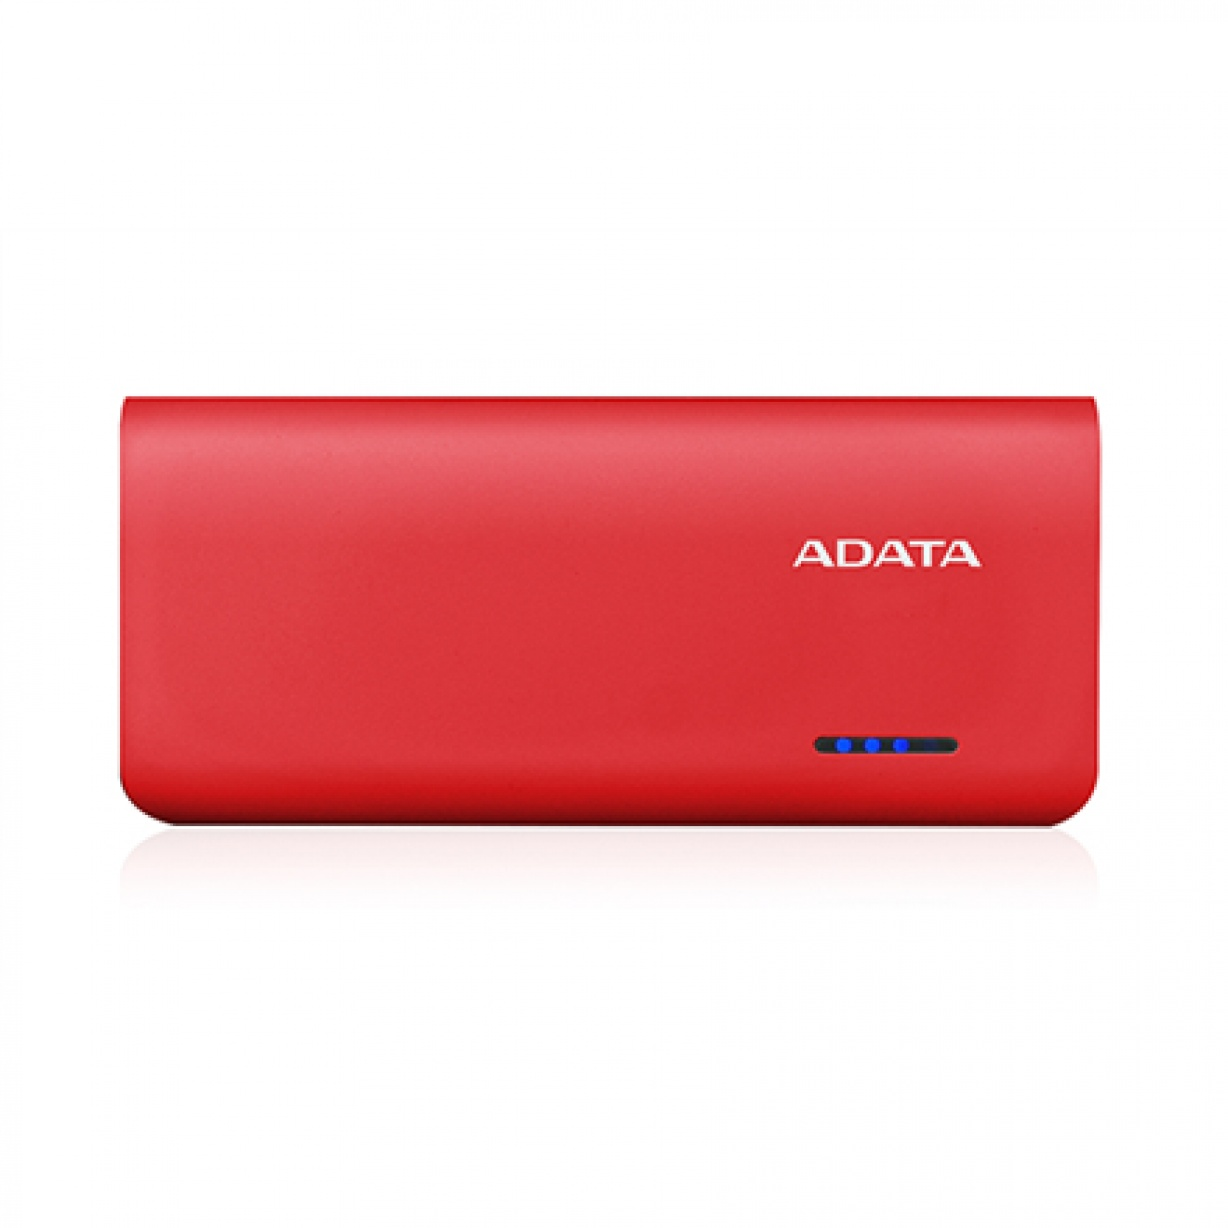 Išorinė baterija ADATA APT100 10000 mAh Red/Orange